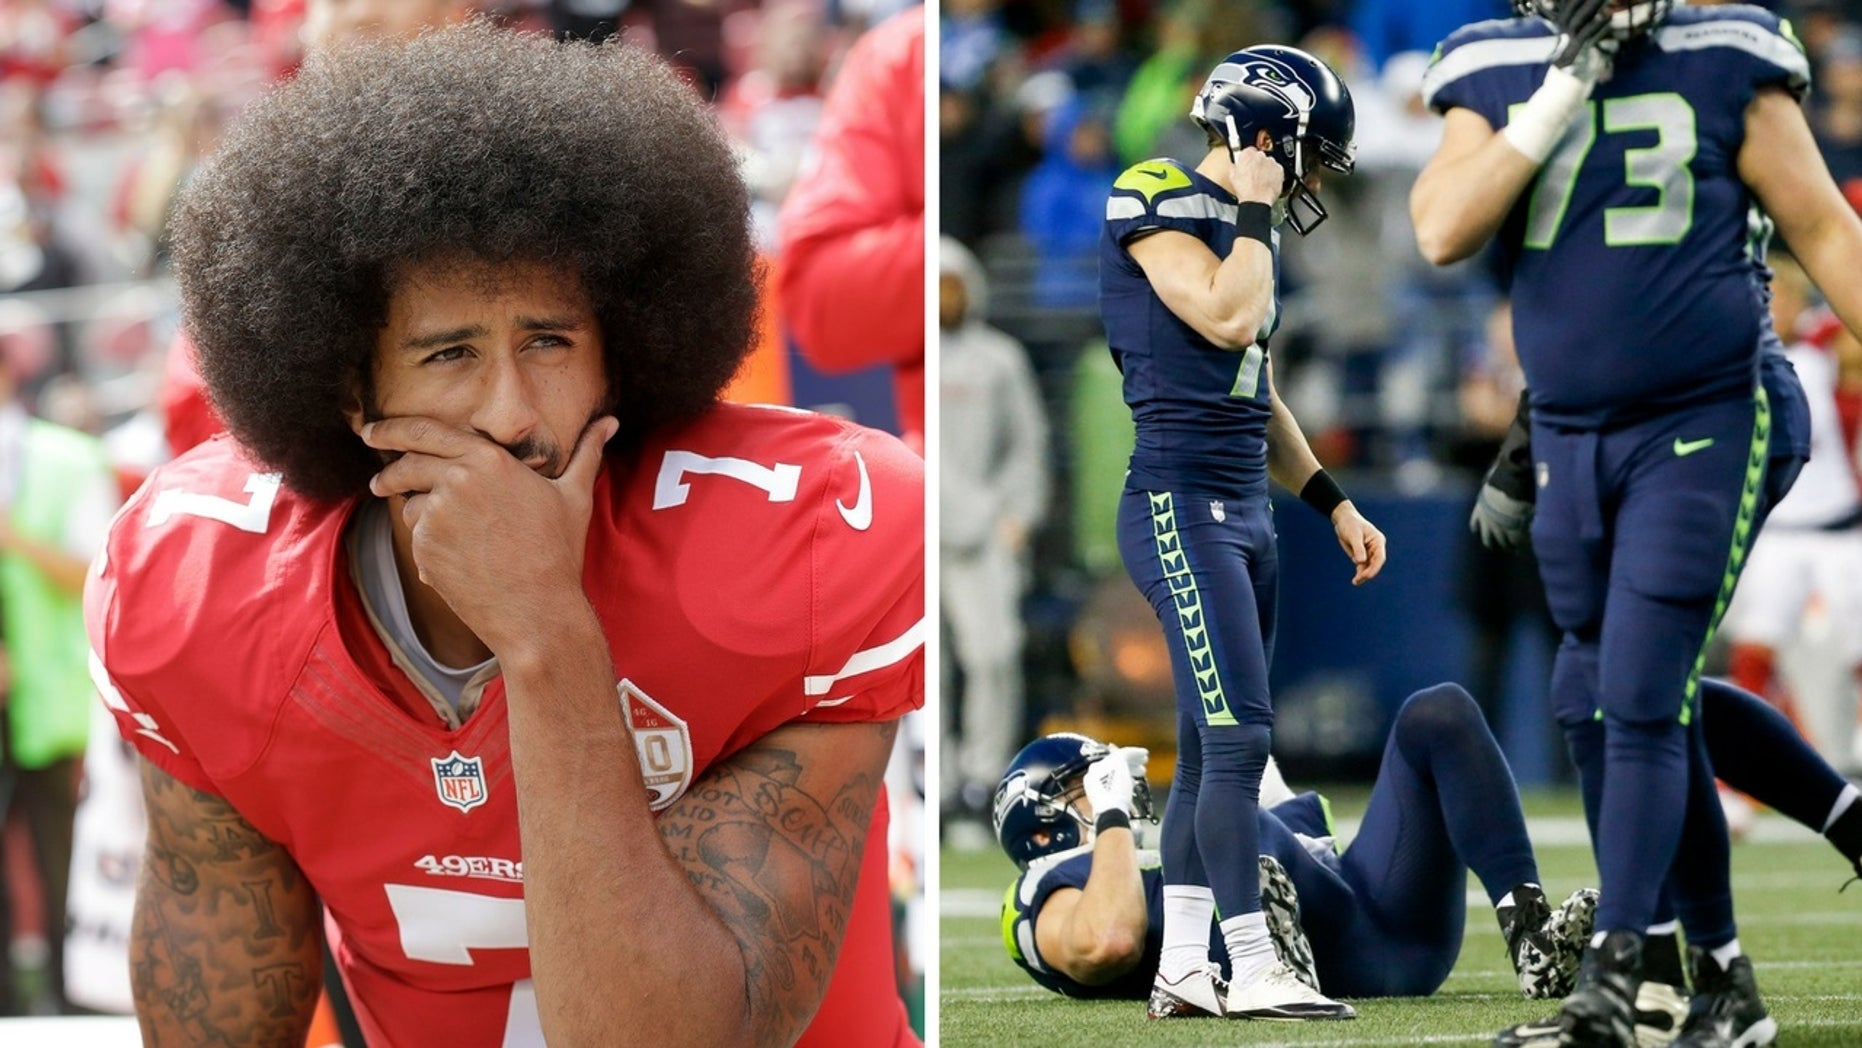 Colin Kaepernick was reportedly snubbed by the Seattle Seahawks after he declined to say if he would stop his national anthem kneeling protests.